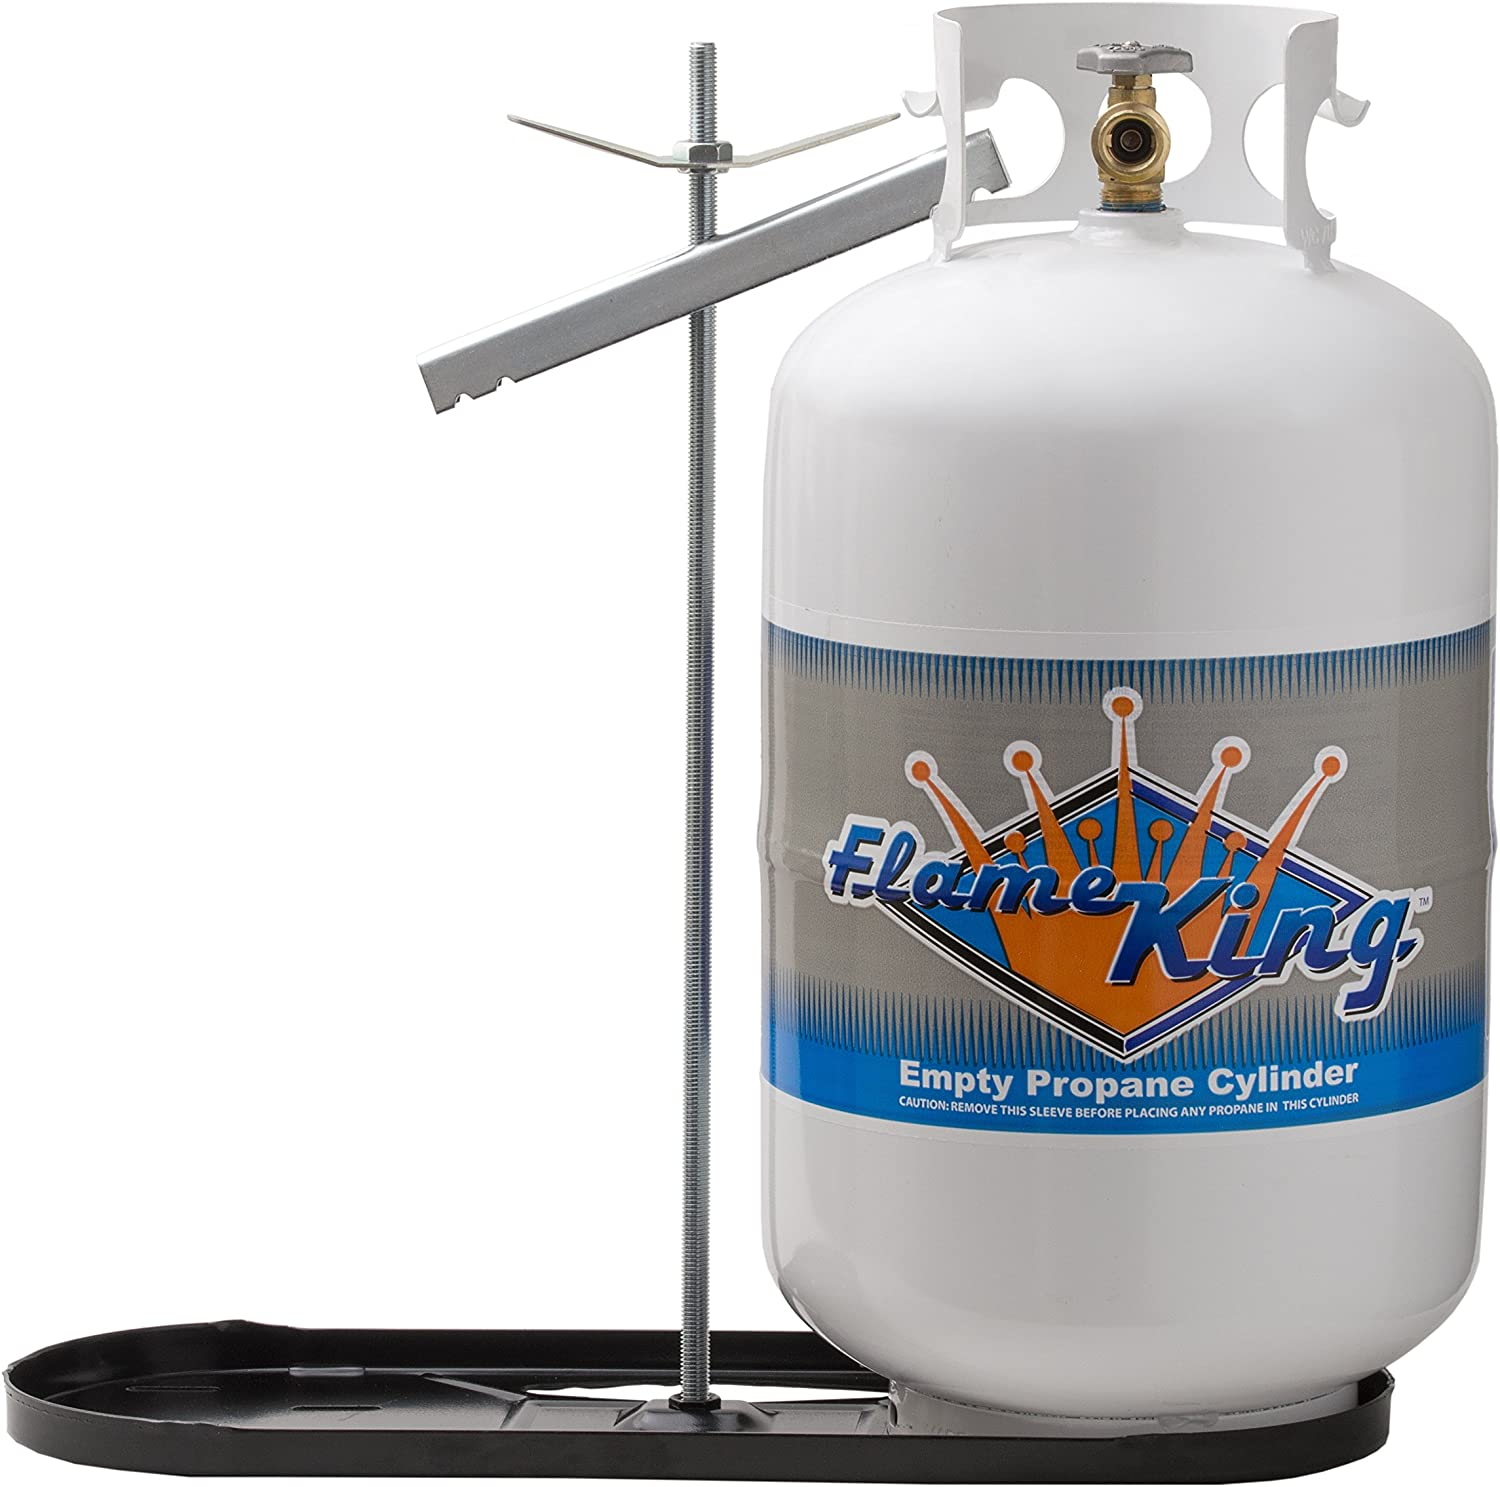 KT30MNT Flame King Dual RV Propane Tank Cylinder Rack For RVs and Trailers for 30lb Tanks Tanks not included